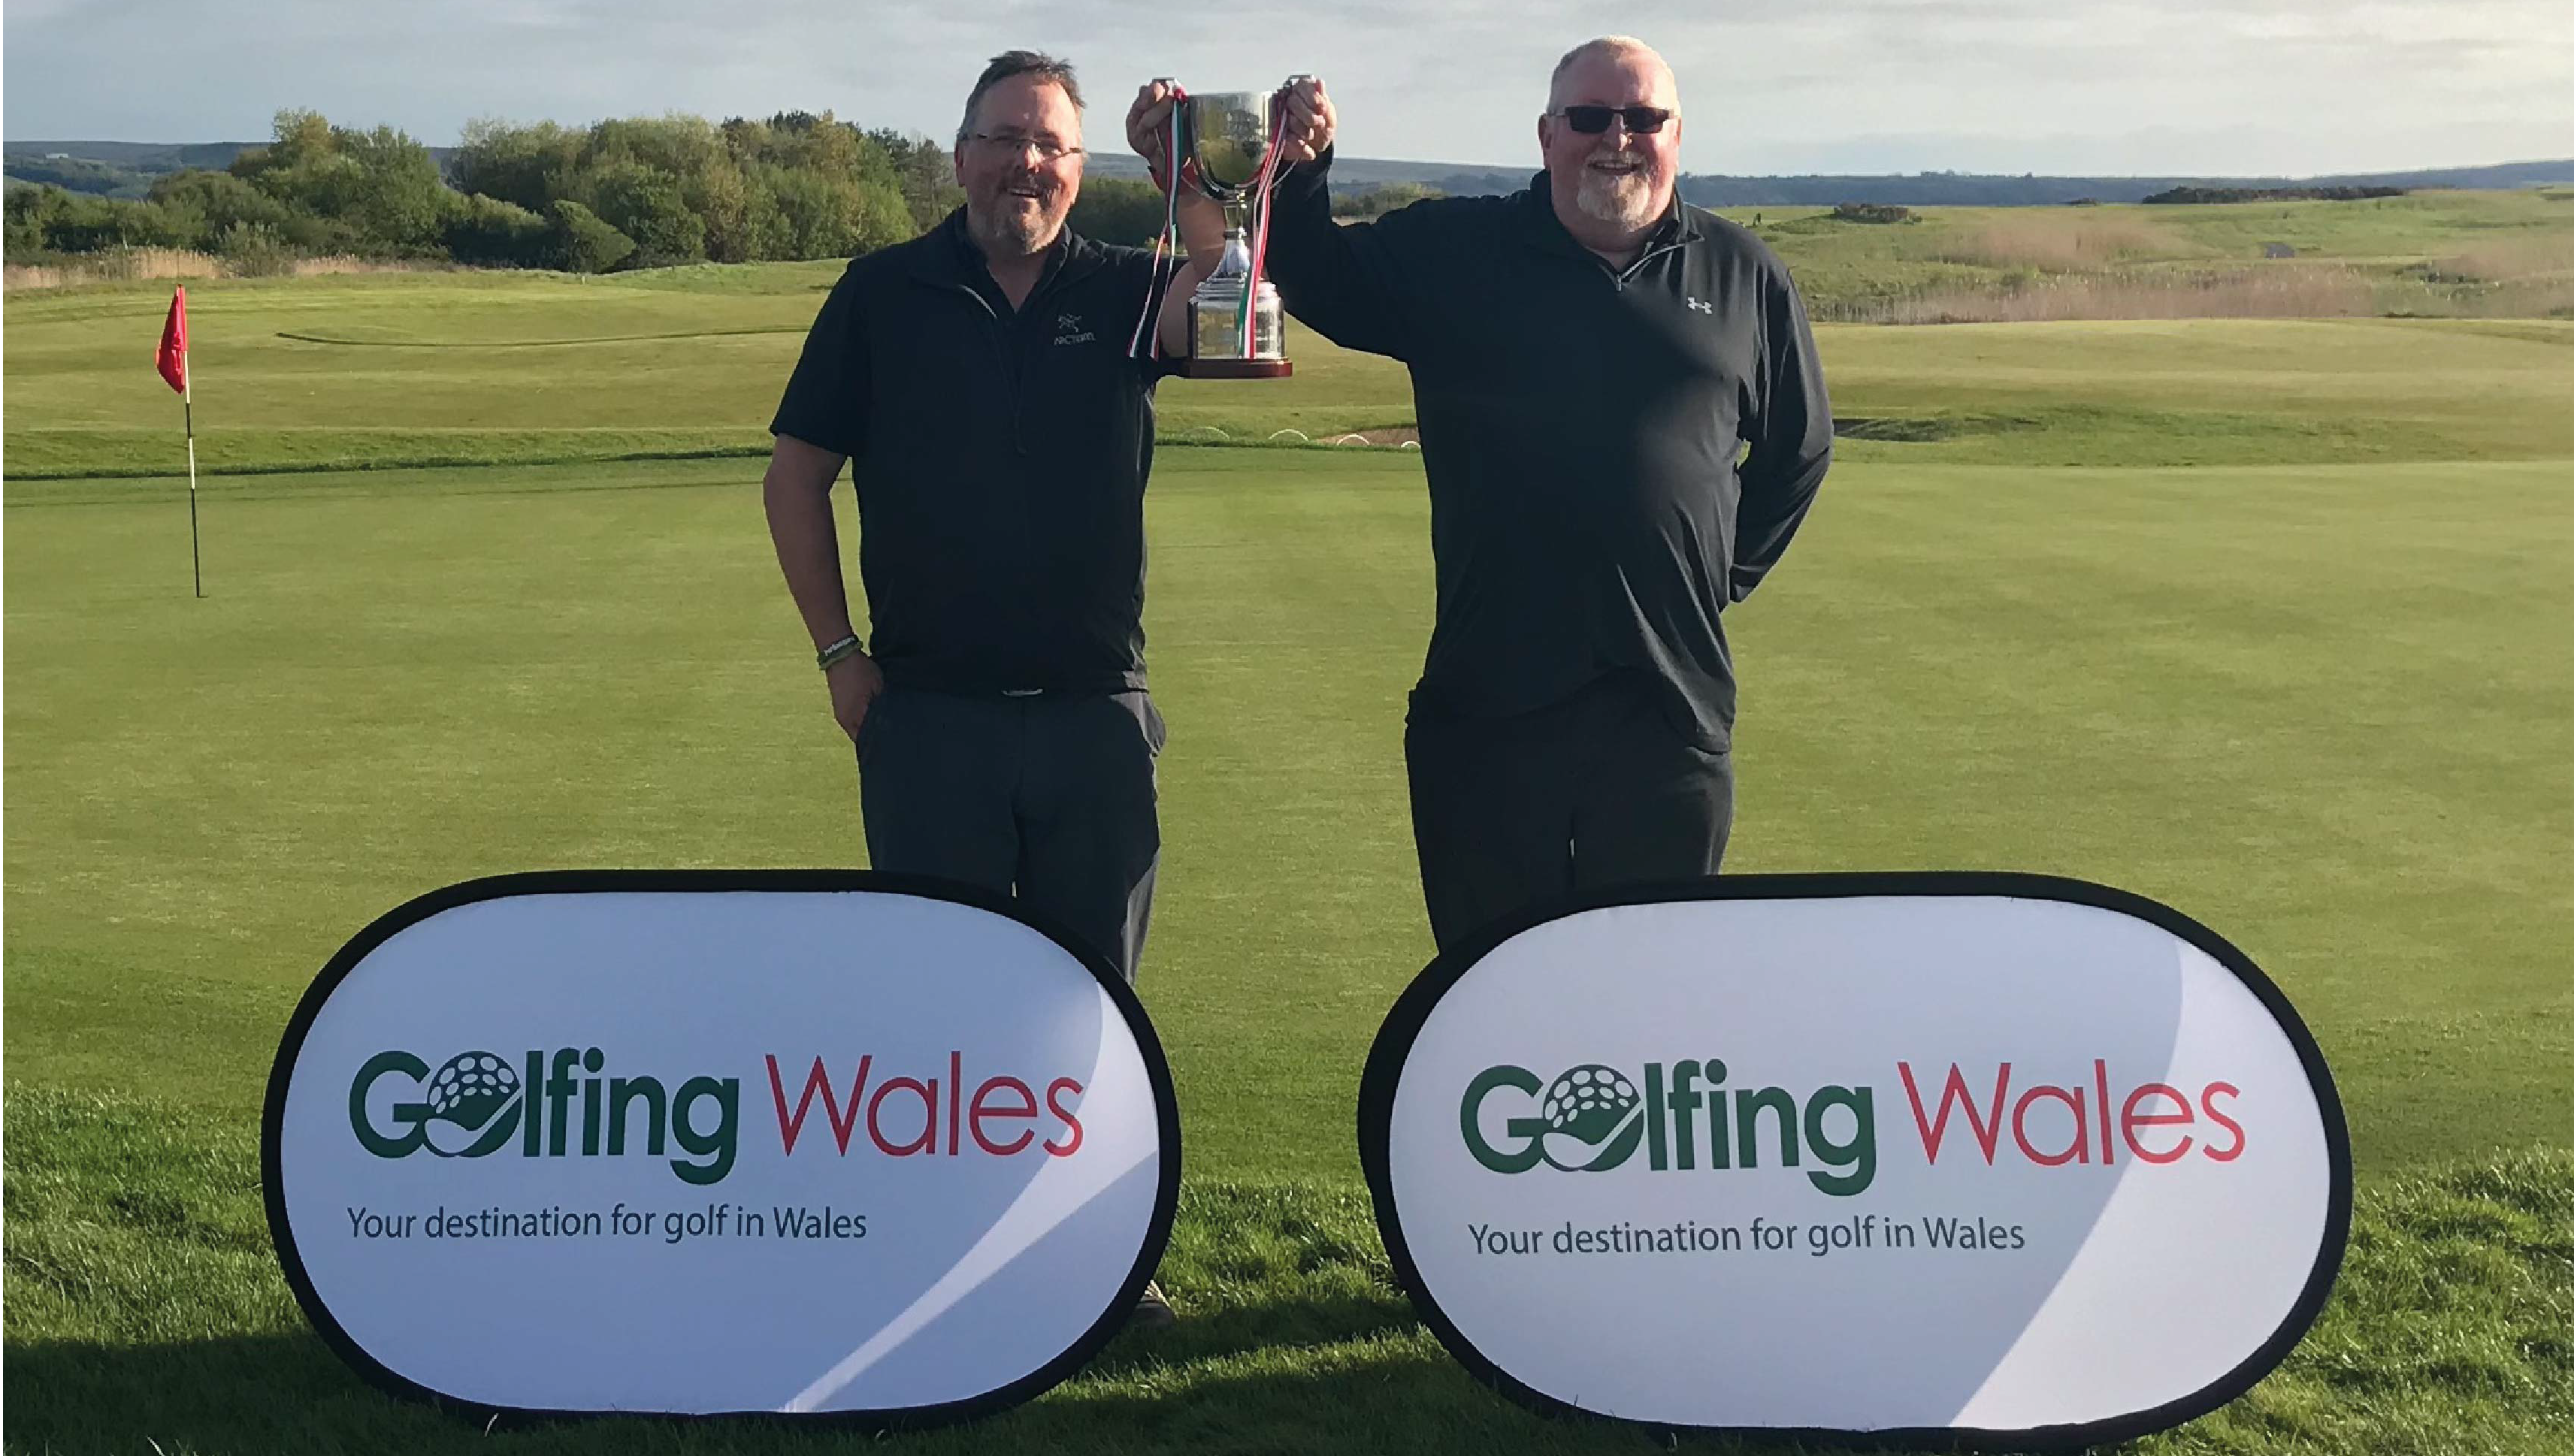 Martin Like & Brian Evans win the 2018 Golfing Wales Challenge Cup